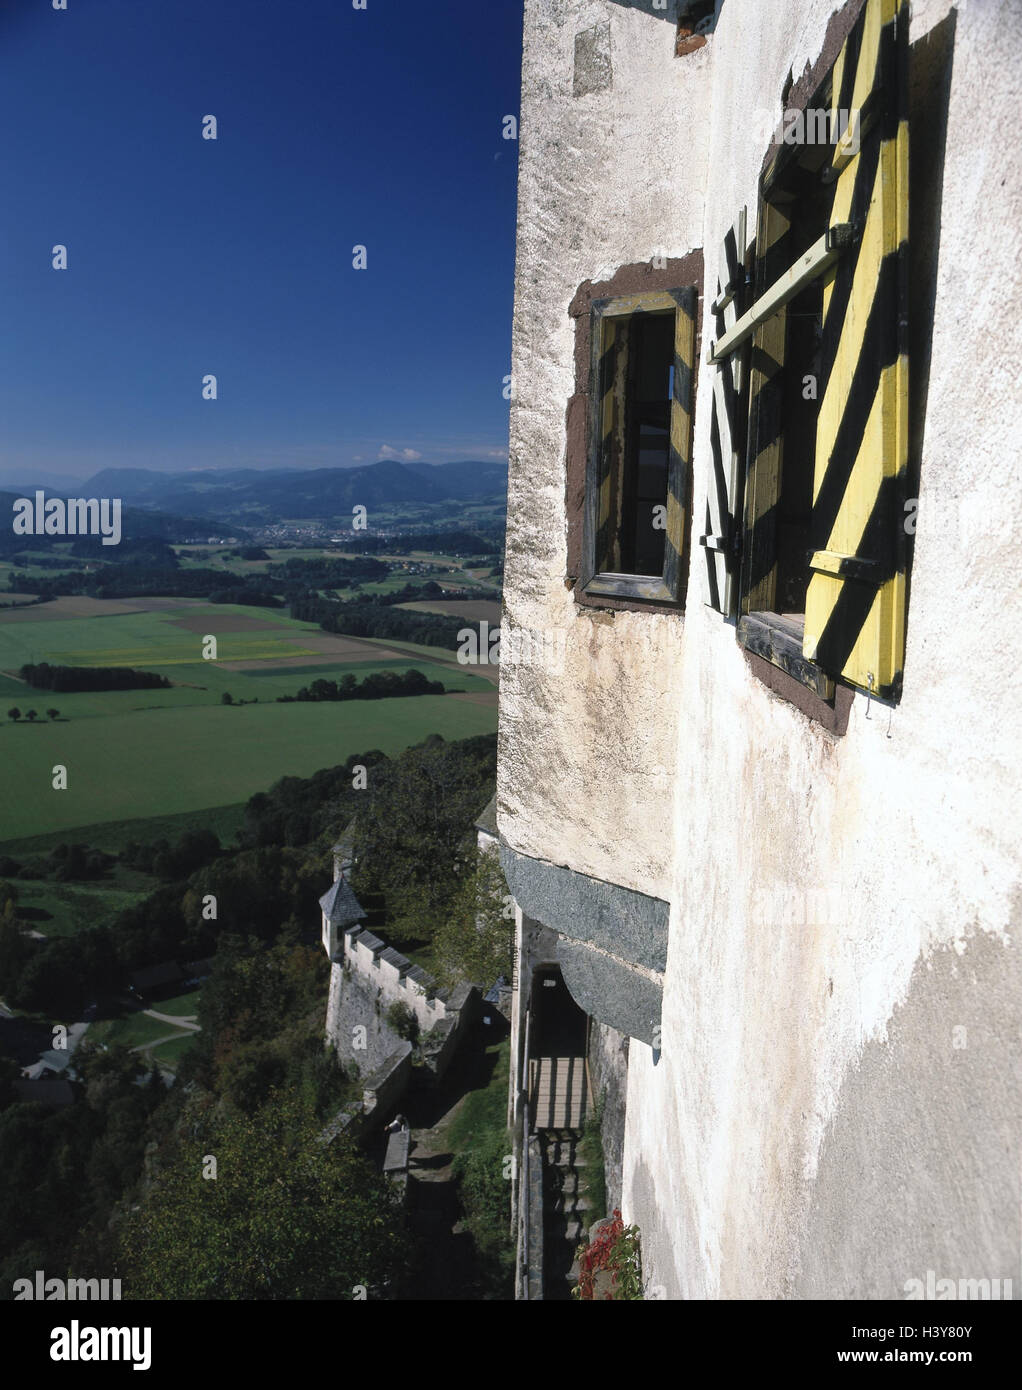 ... Scenery, Europe, Hill, Lime Rock, Bile, Castle, Castle Grounds,  Fortress, Structure, Building, Place Of Interest, Culture, Outside Wall, Outer  Wall, ...